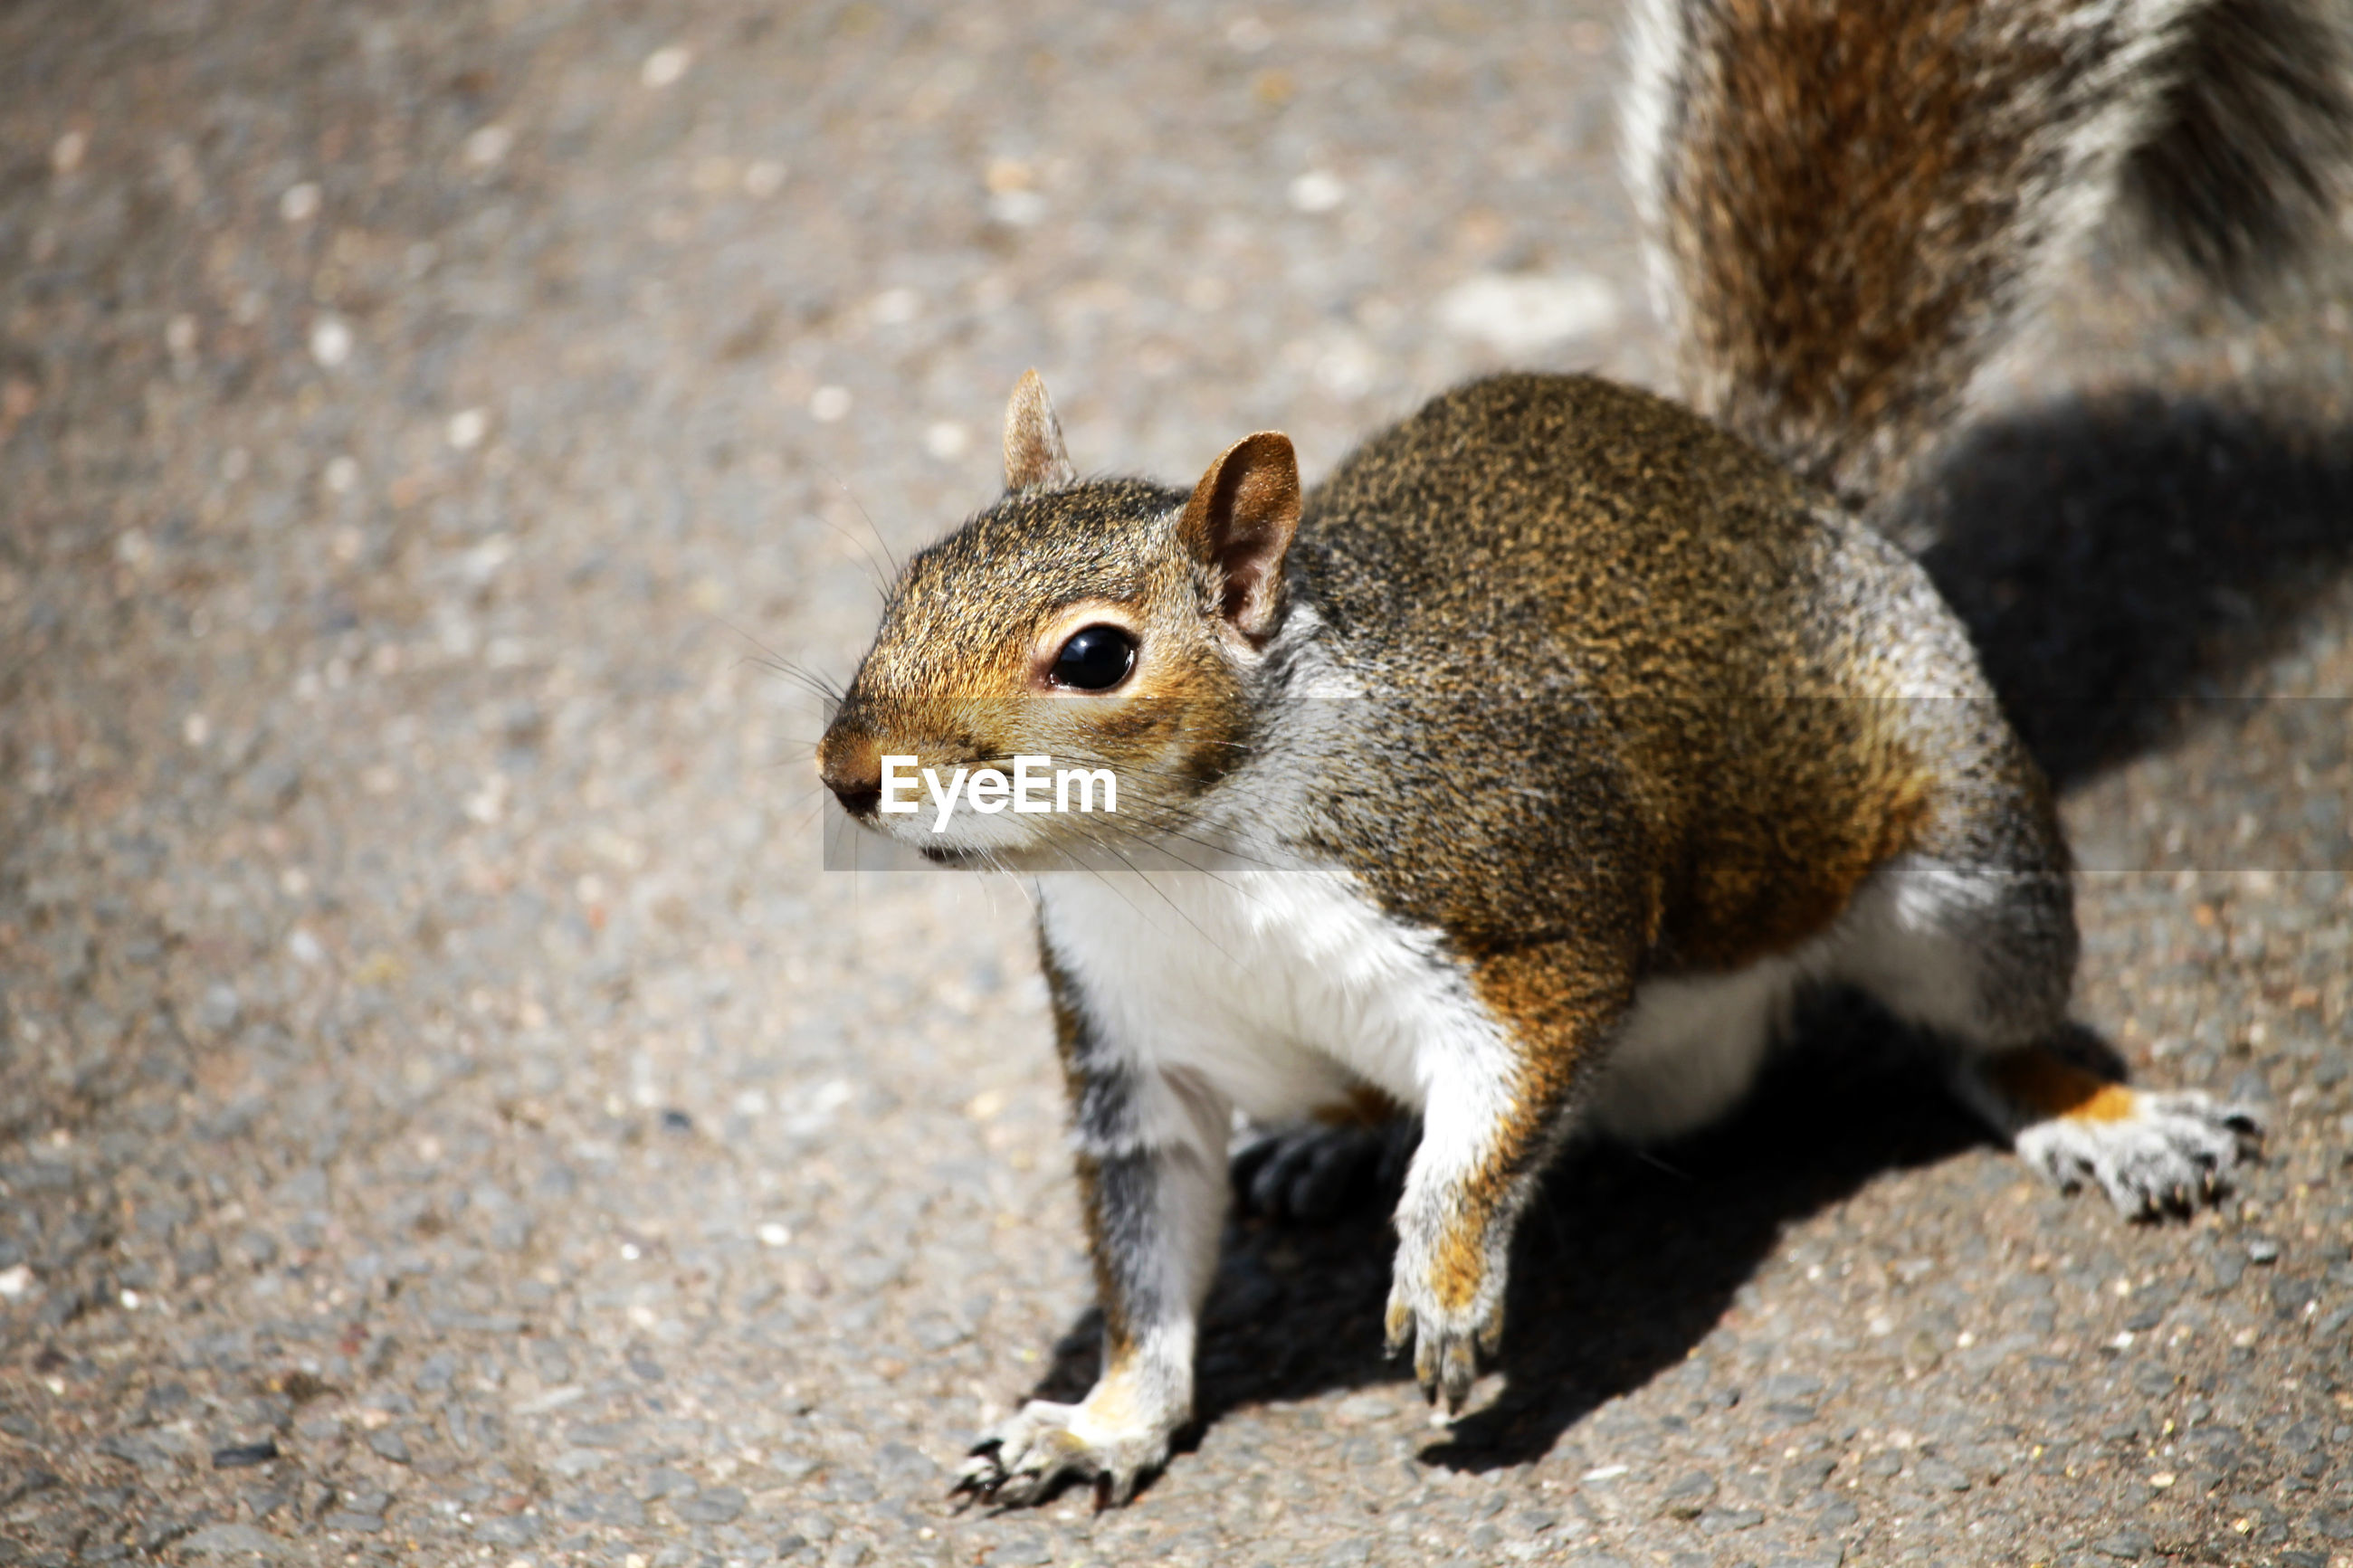 HIGH ANGLE VIEW OF SQUIRREL